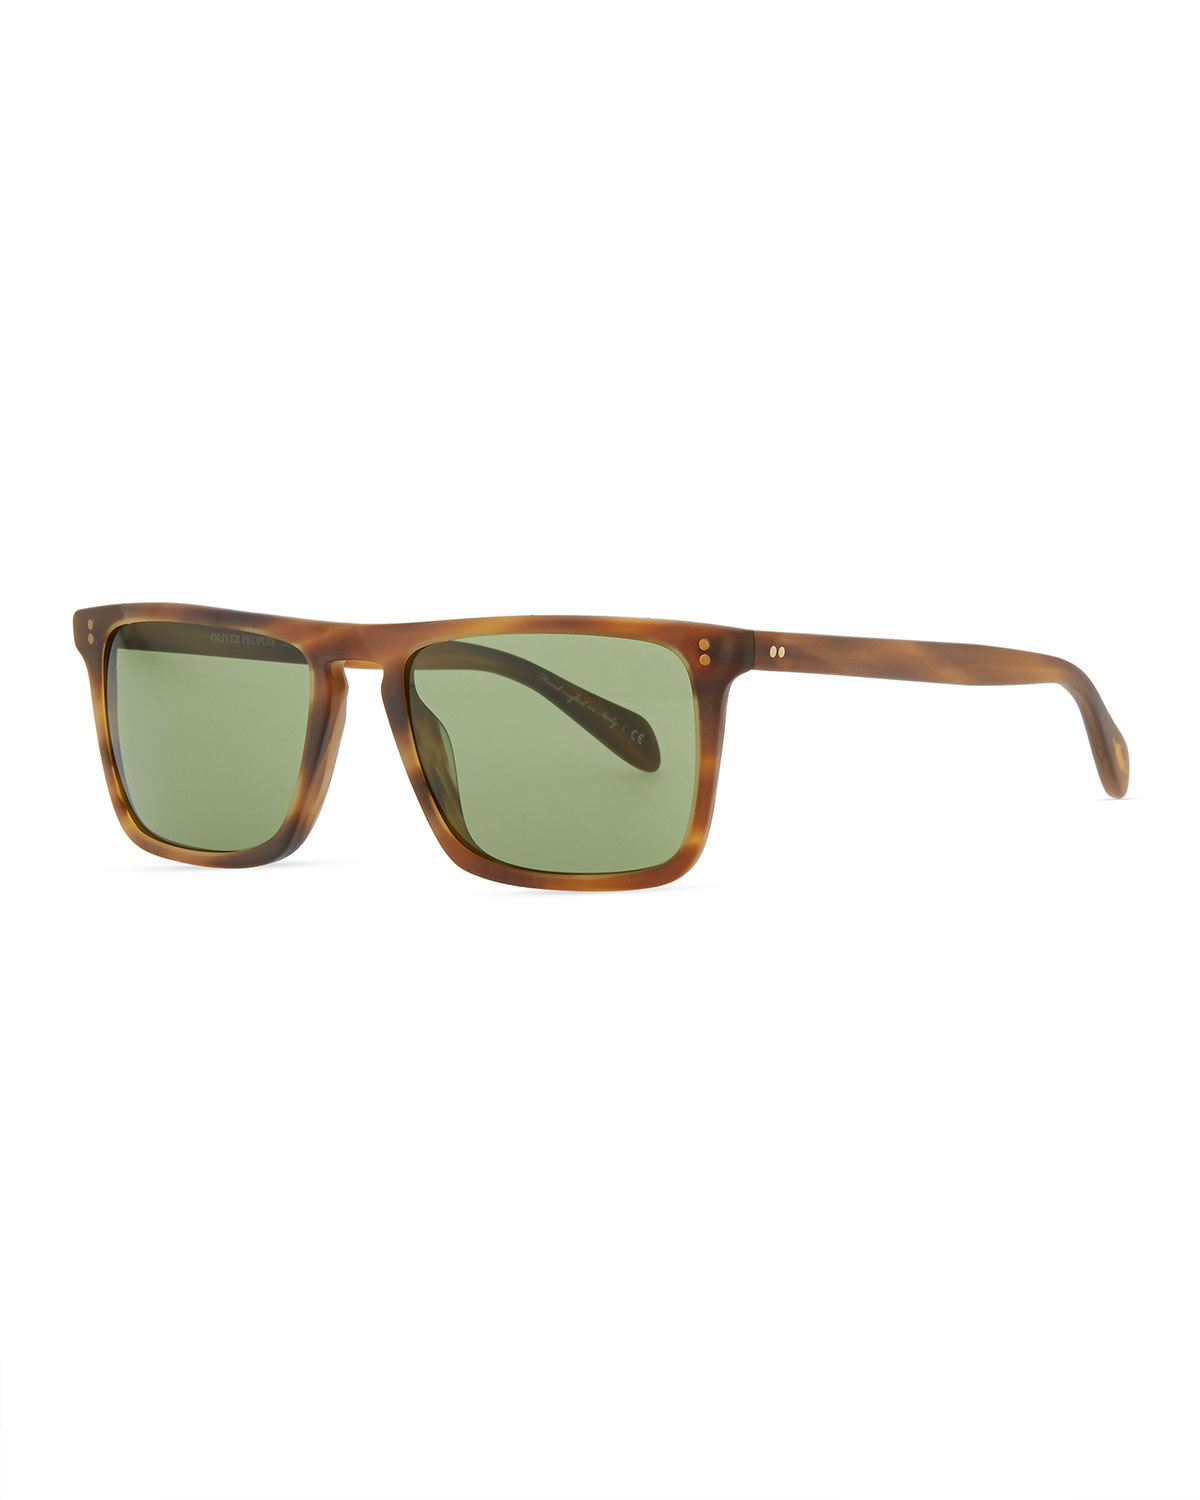 Oliver People Sunglasses Www Panaust Com Au